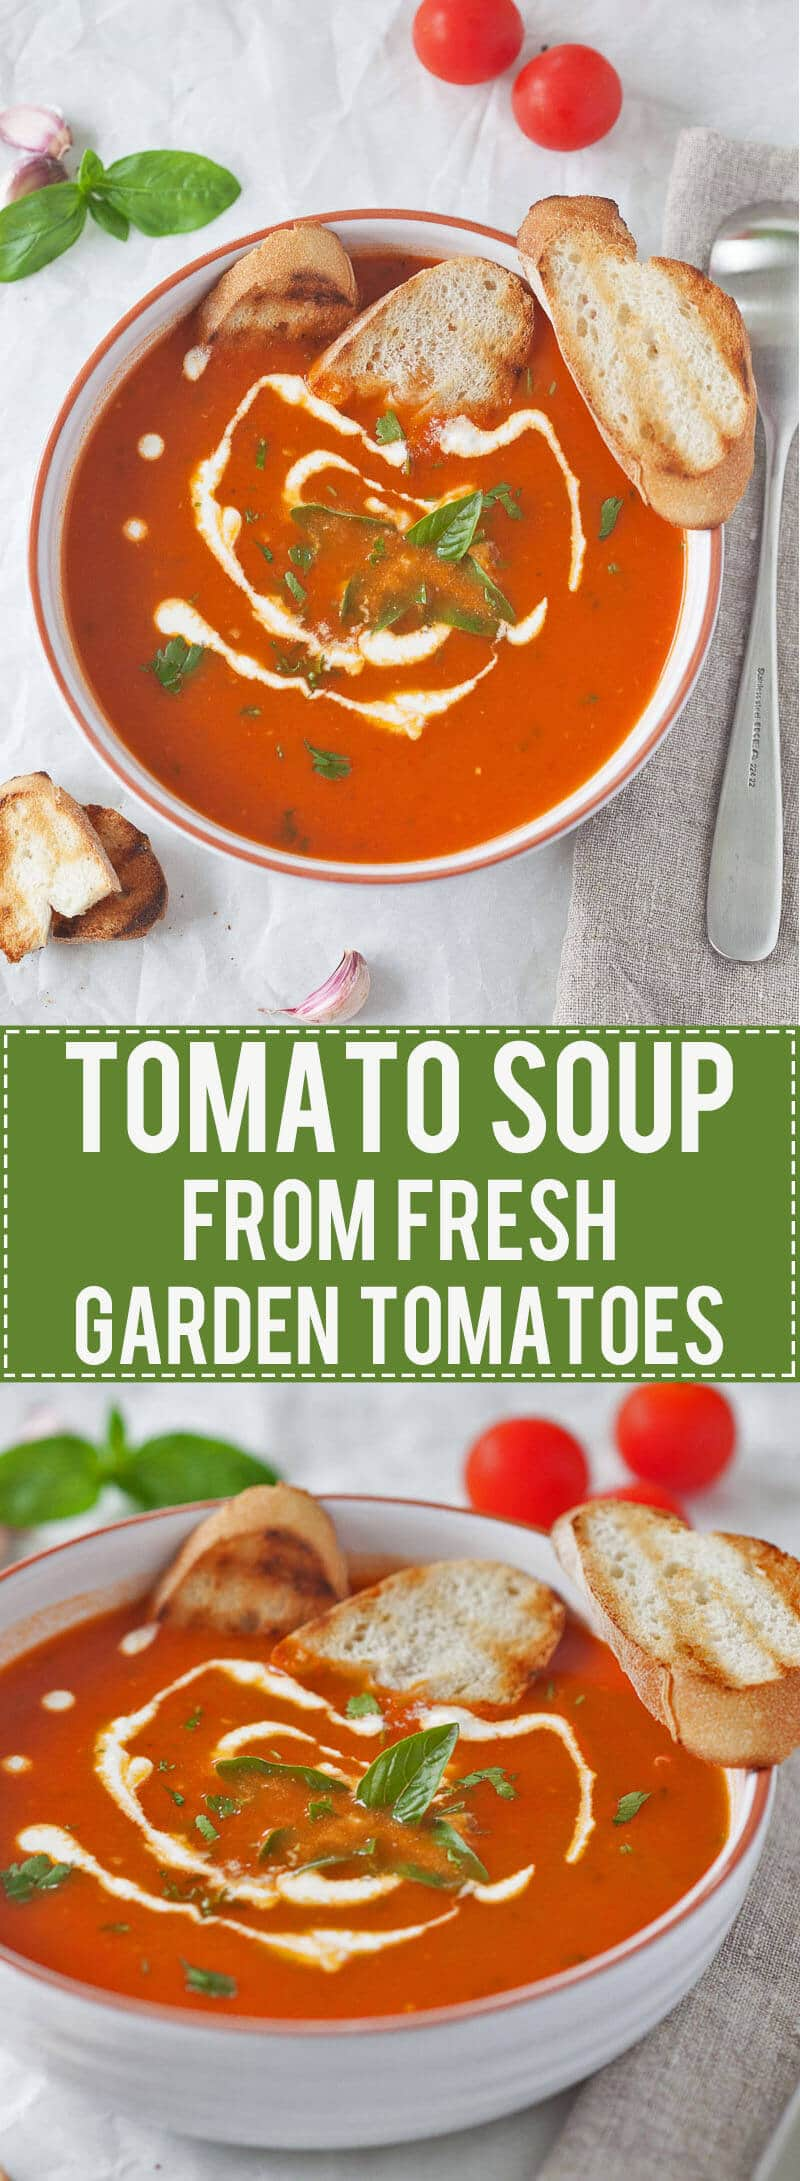 Simply amazing Tomato Soup from Fresh Ripe Tomatoes is delicious. Just 15 minutes and a couple of ingredients to make it, quick & easy! #tomatosoup